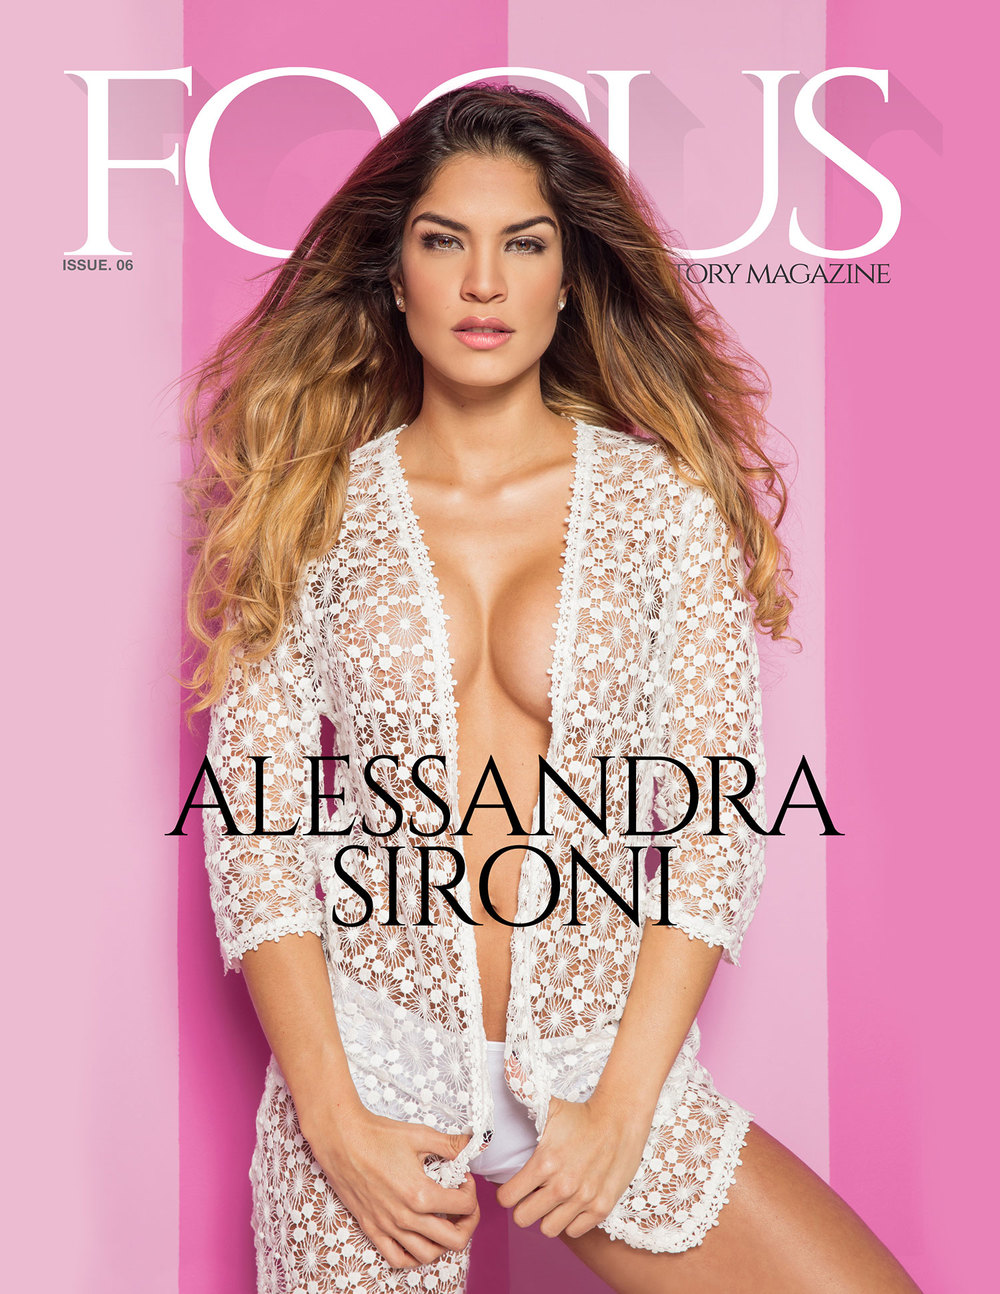 FFM-February-Cover-Alessandra Sironi Small.jpg